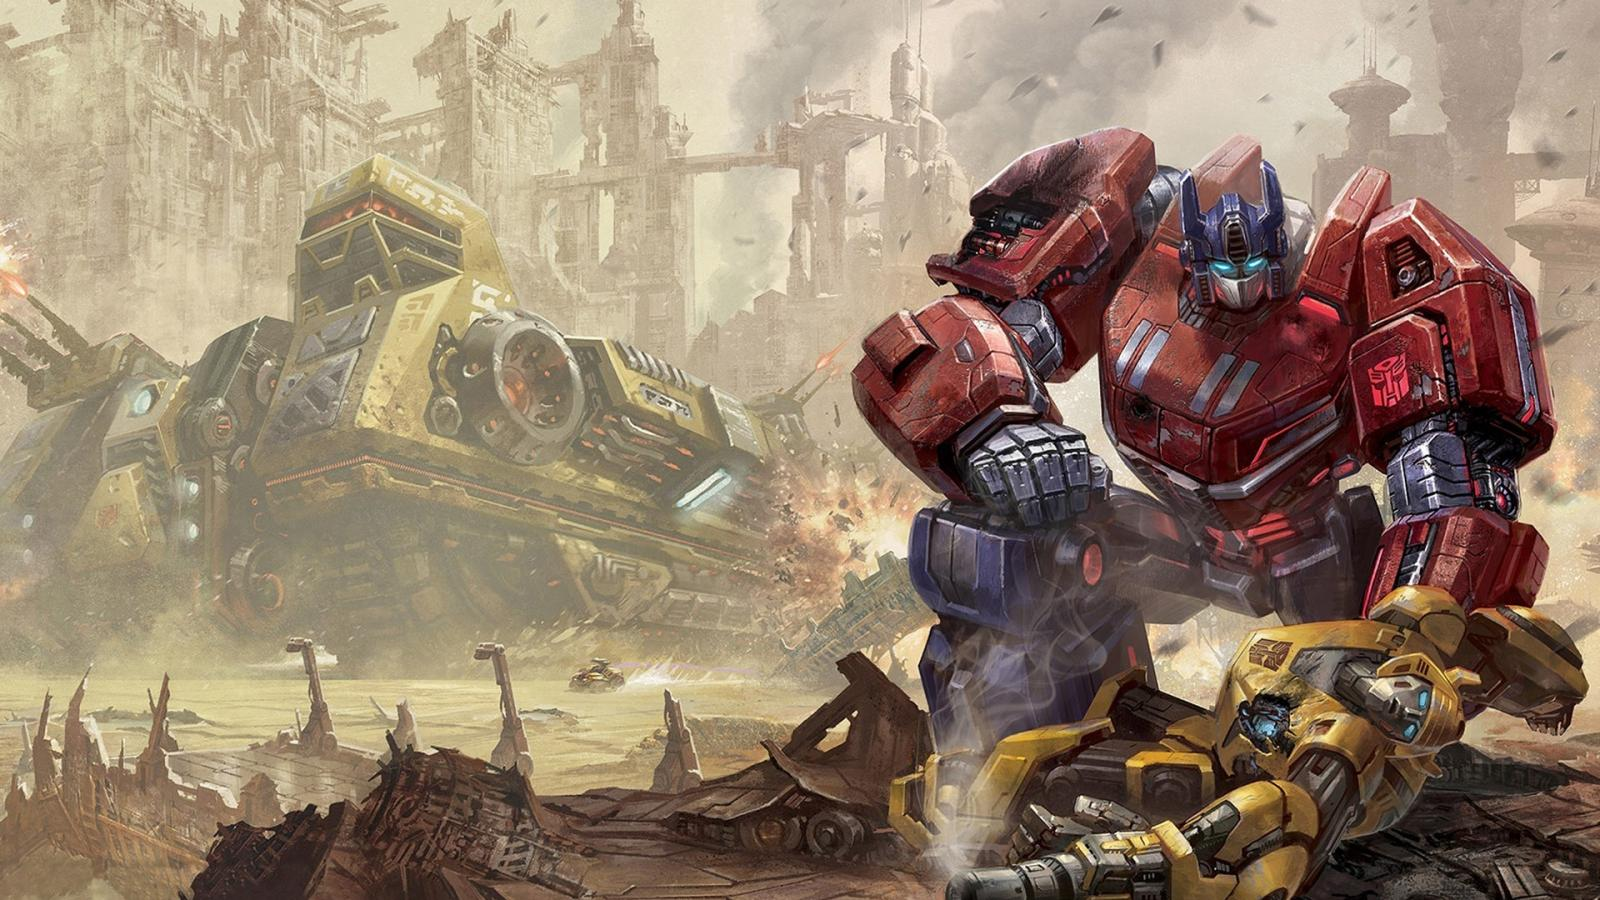 prime transformers bumblebee fall of cybertron wallpaper 57383 1600x900